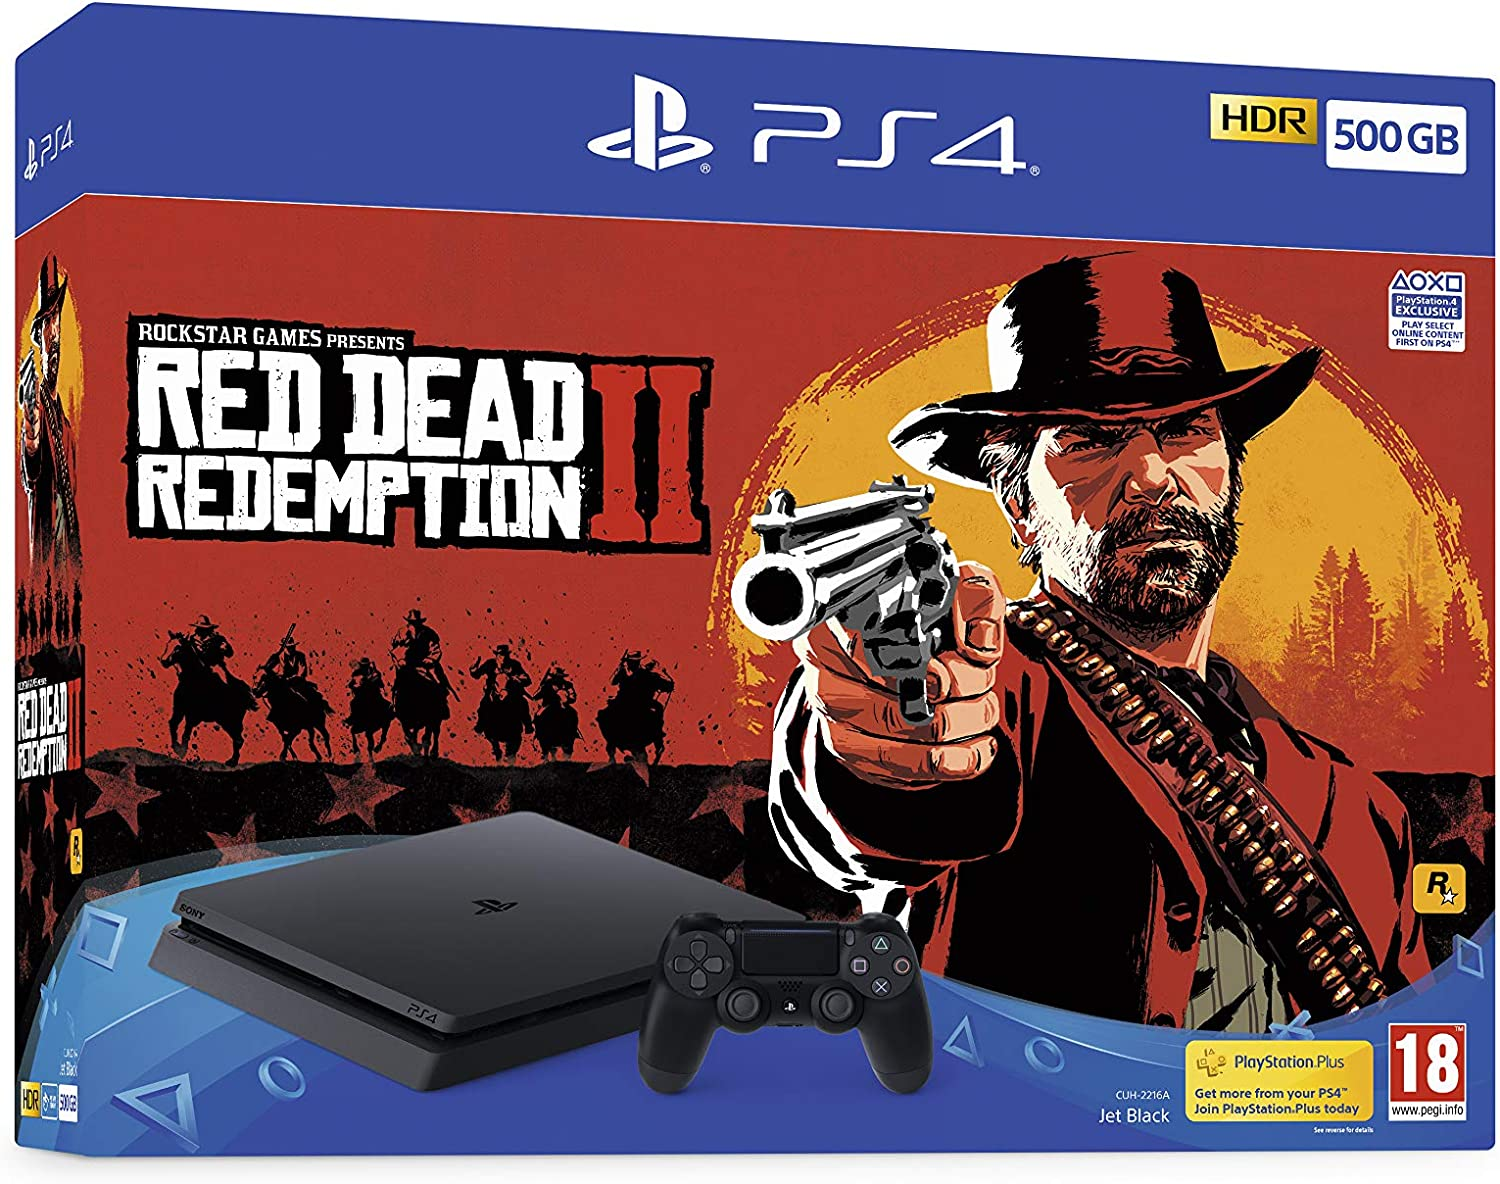 Sony PlayStation 4 500GB Console (Black) with Red Dead Redemption ...